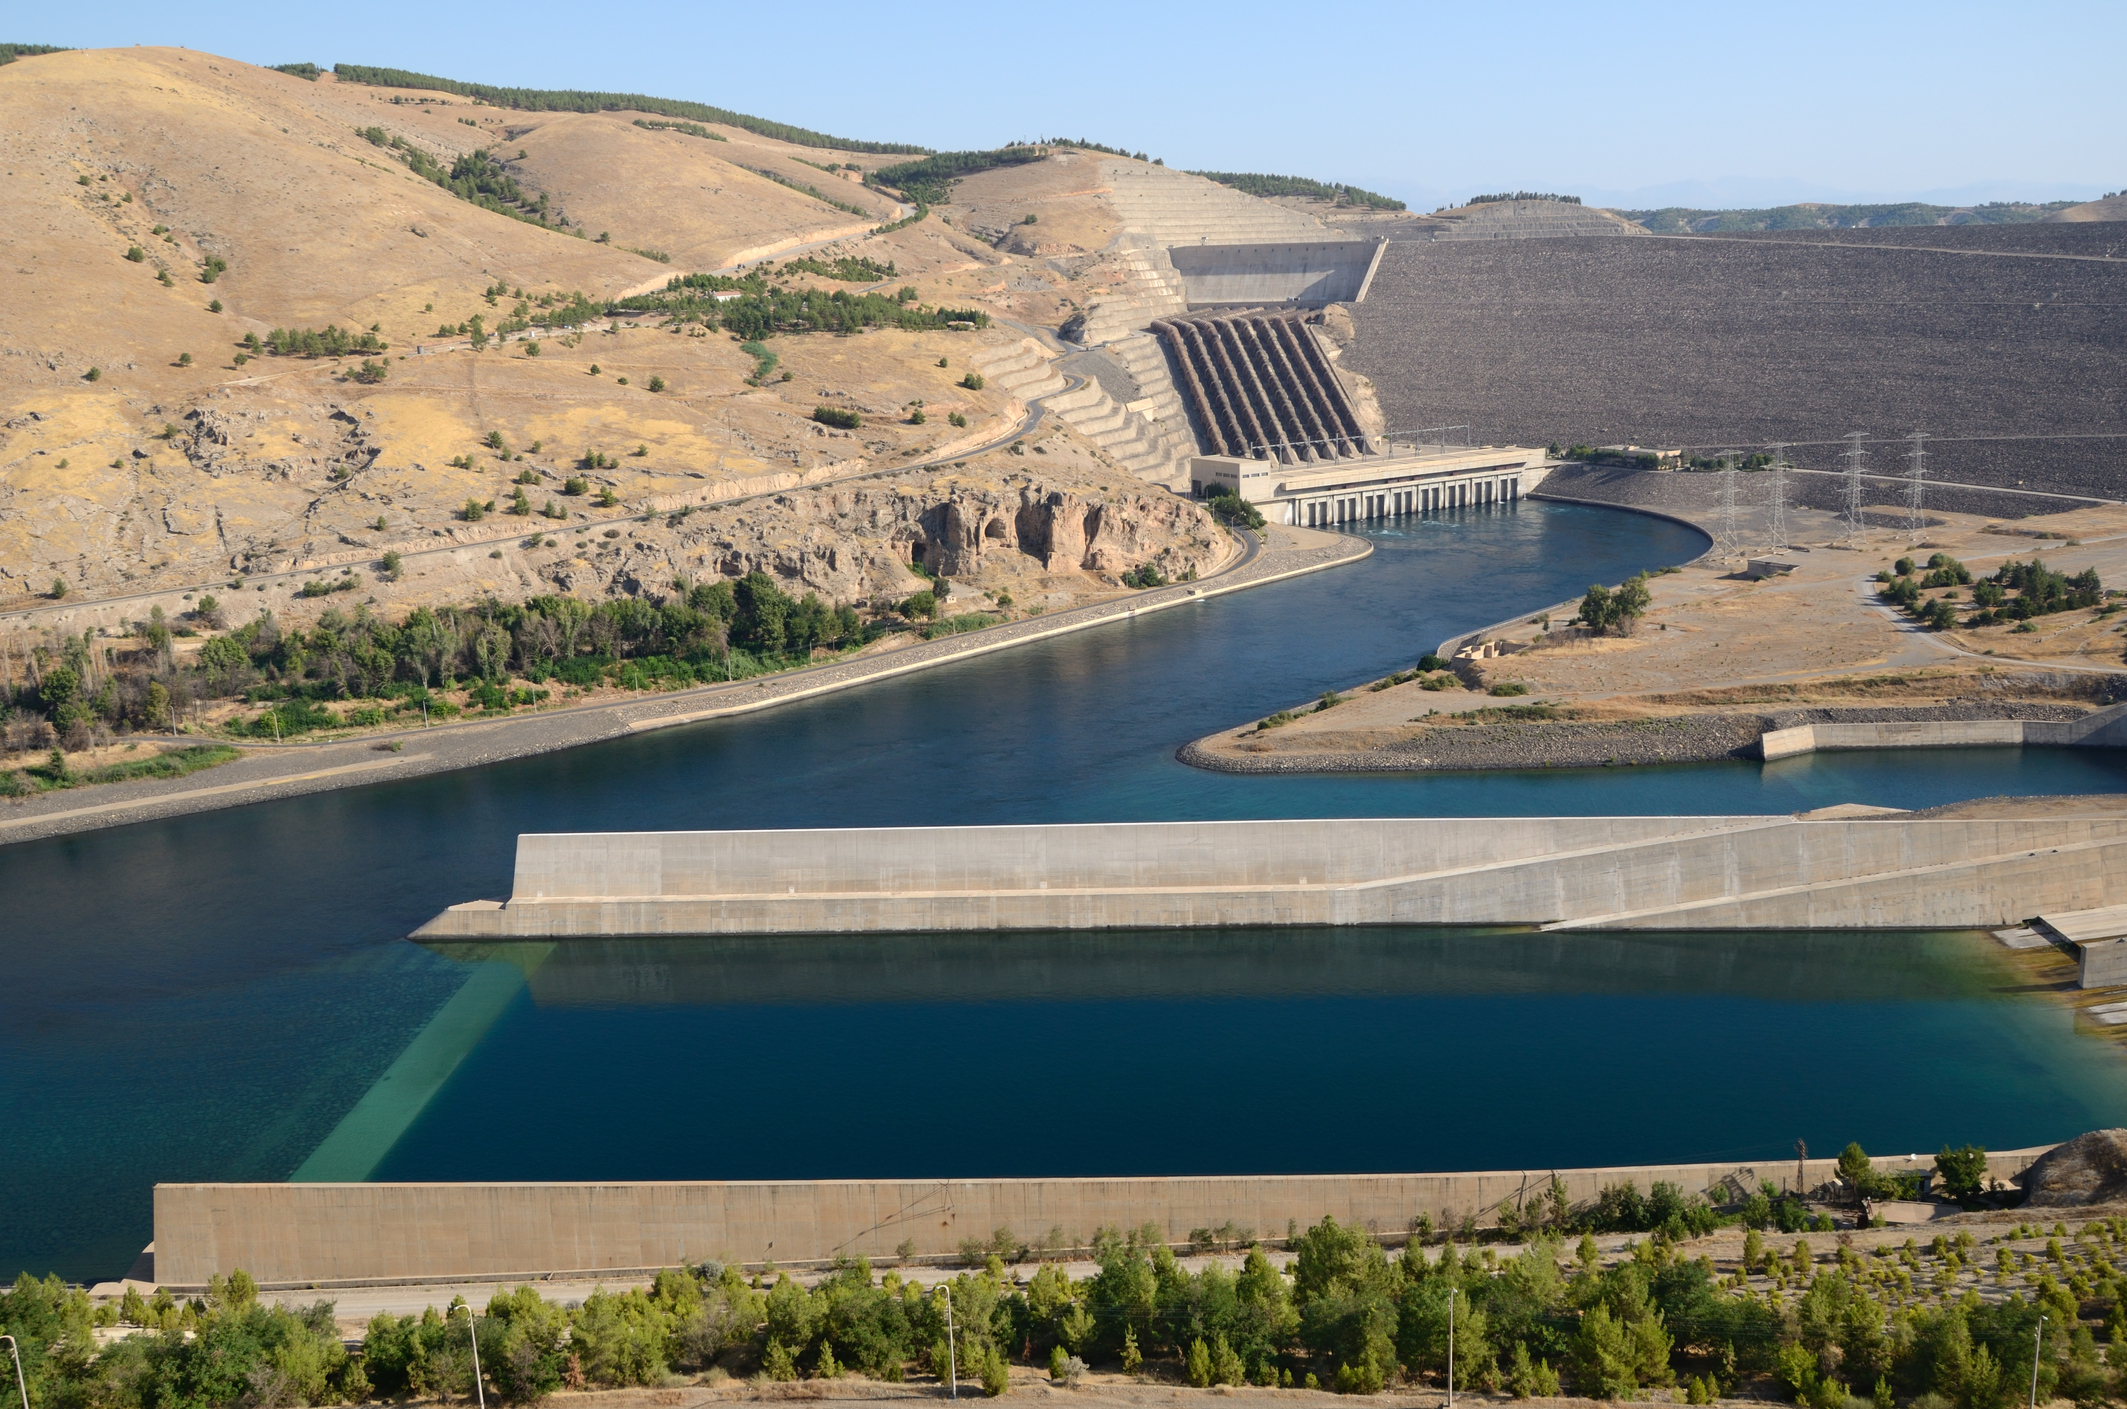 Panoramic view of Ataturk dam in Turkey